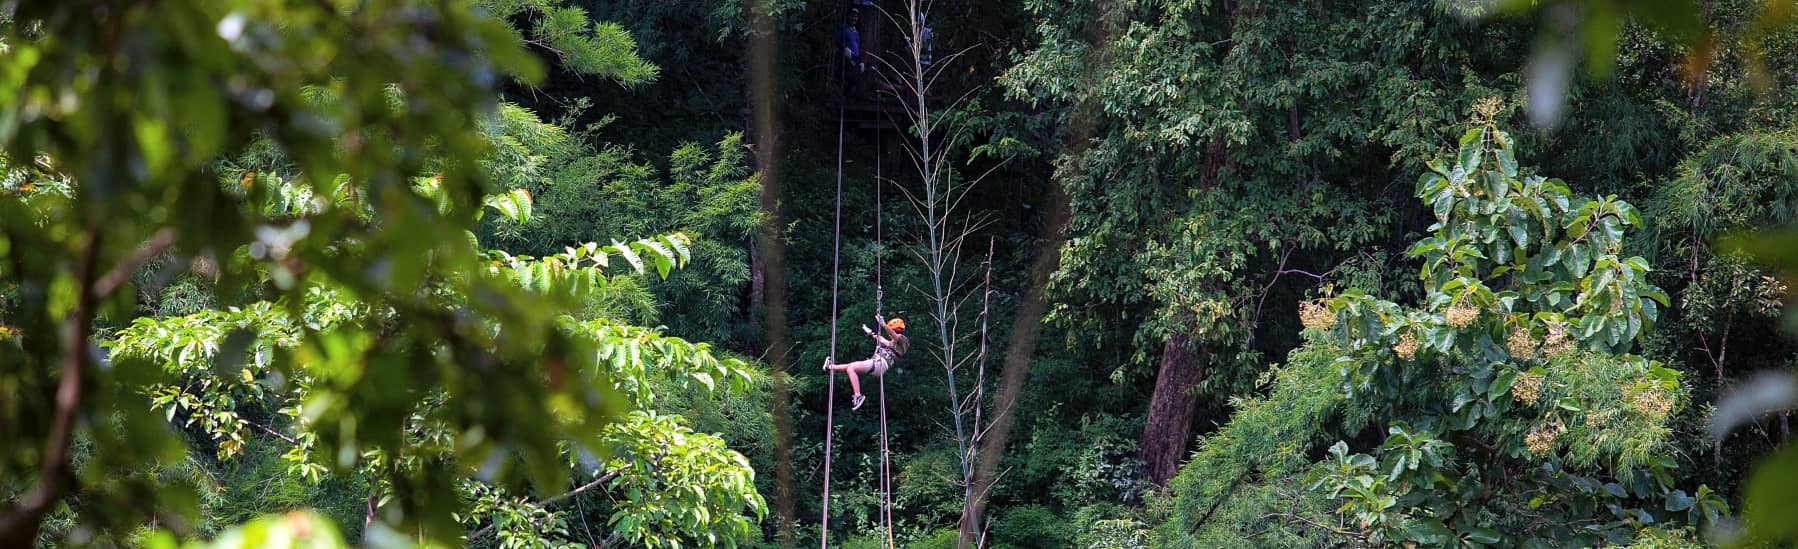 10% OFF Zipline Adventures at Jungle Flight Chiang Mai — E-ticket  gallery